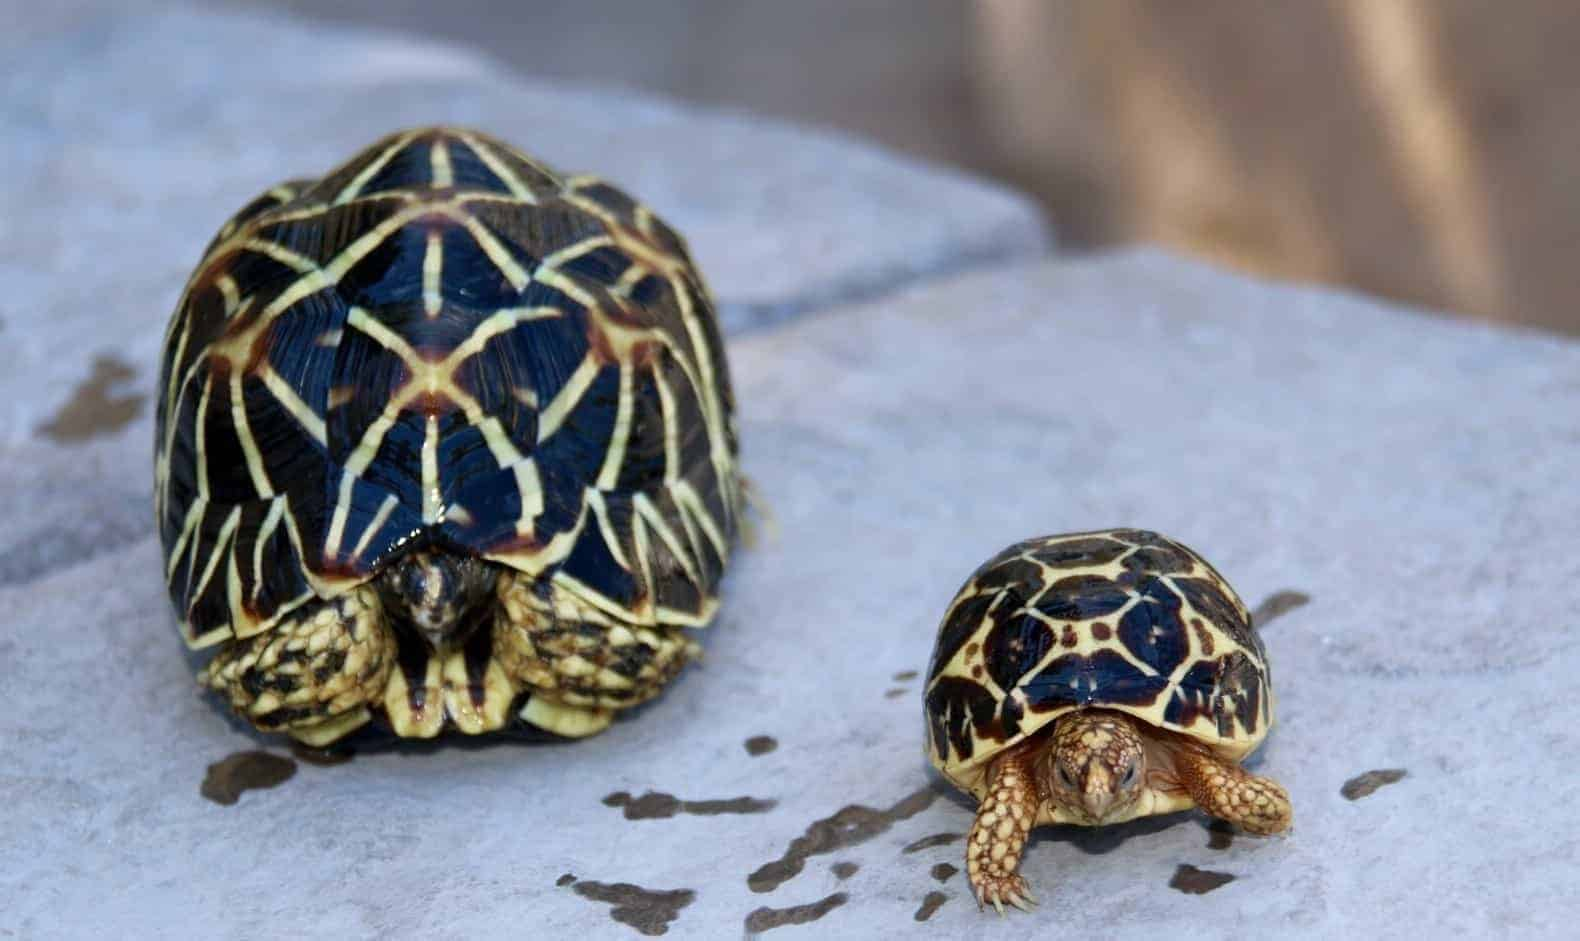 Indian Star Tortoise For Sale Online Indian Star Tortoises